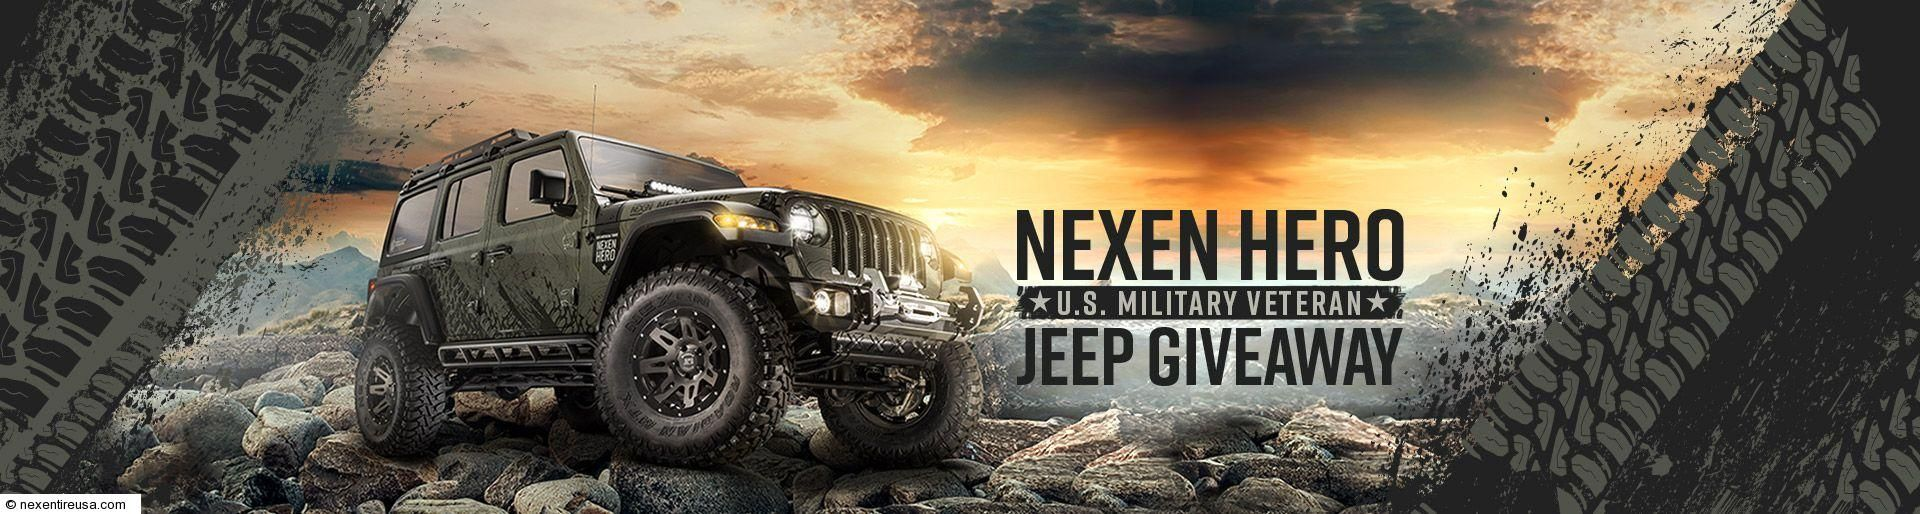 Jeep Wrangler Giveaway Jeep Wrangler Jeep Military Veterans